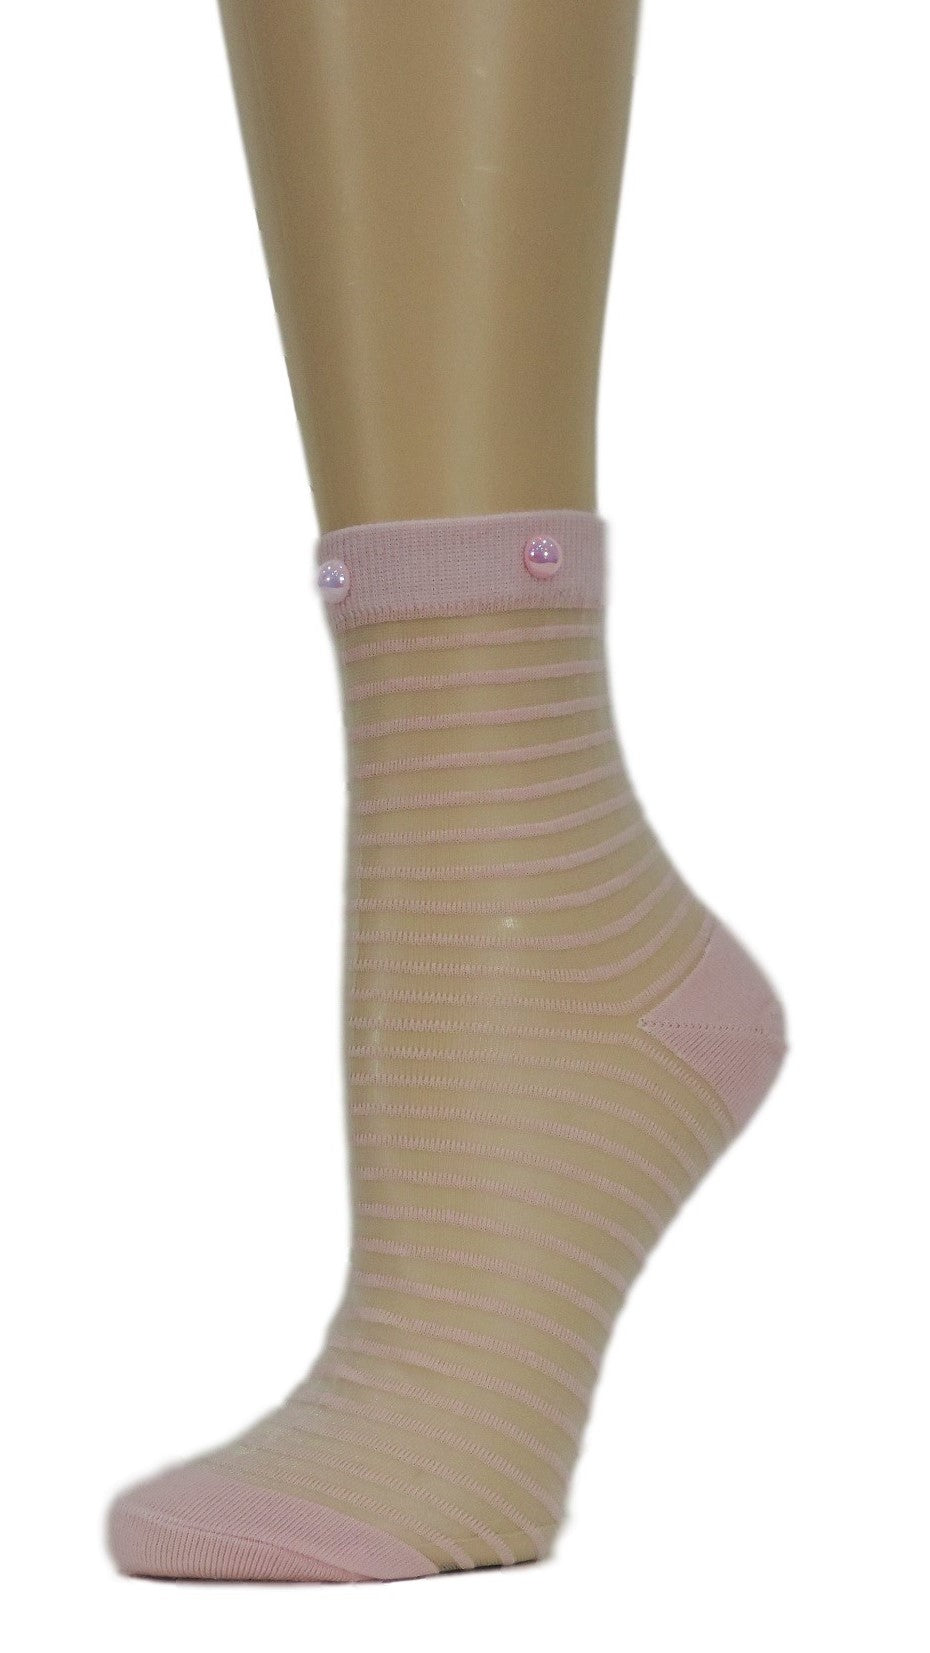 Sweet Pink Striped Custom Sheer Socks with beads - Global Trendz Fashion®